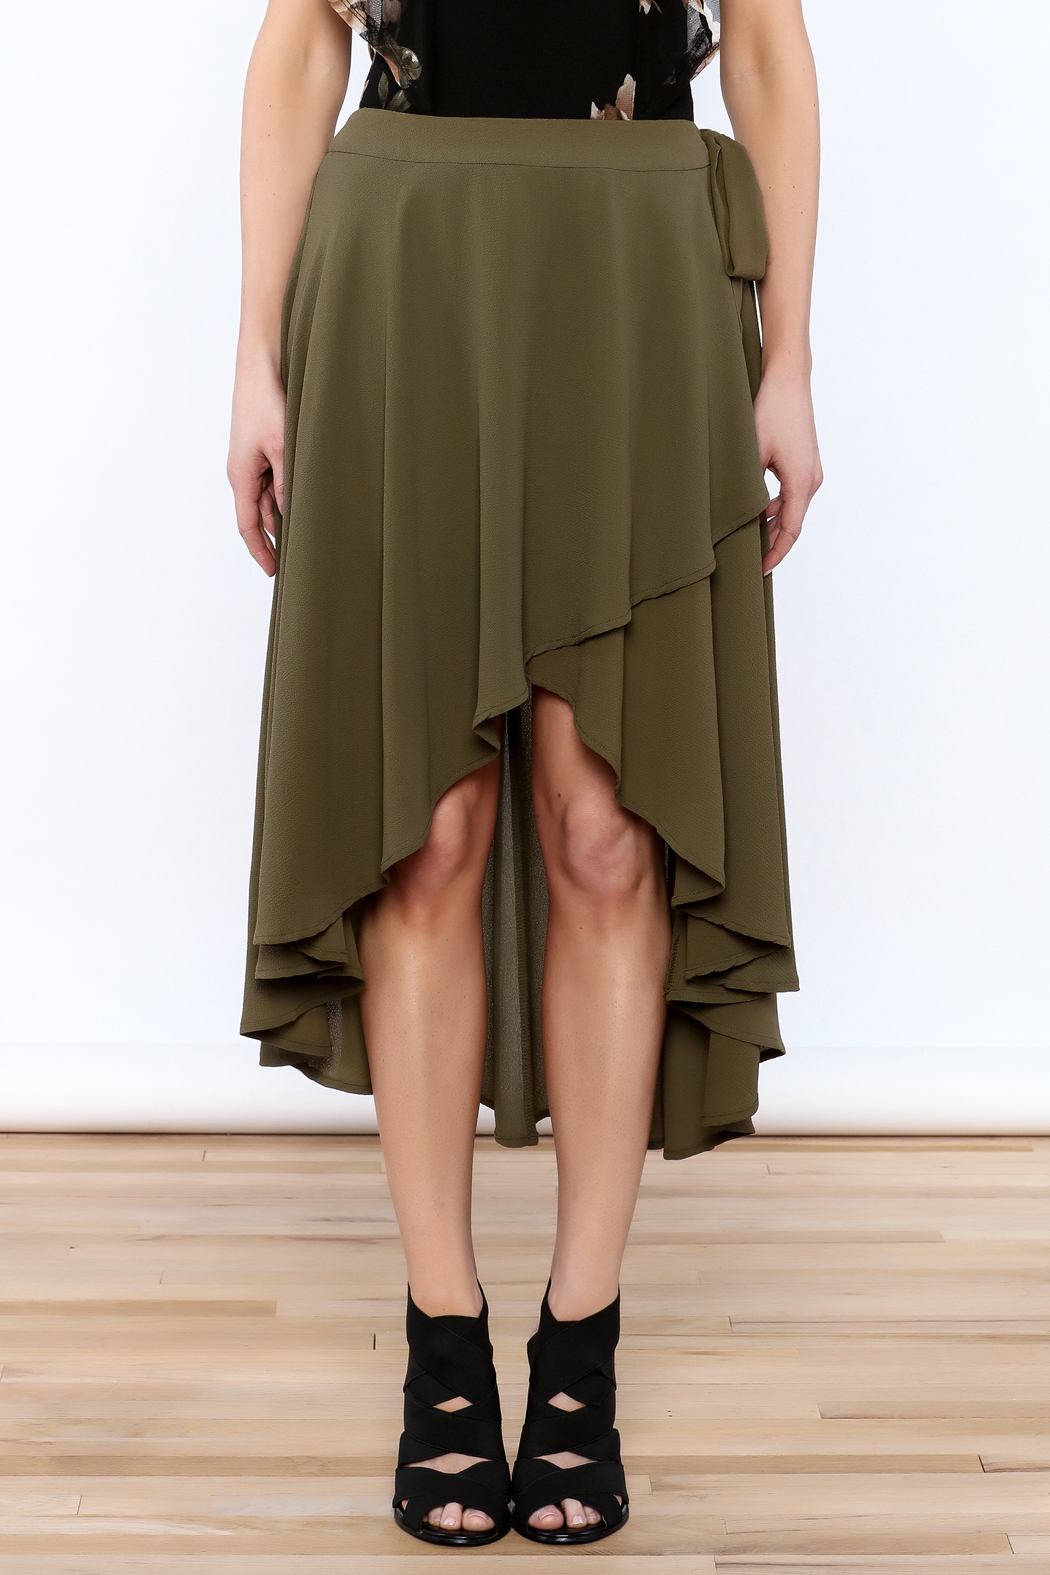 She + Sky Olive Green Midi Skirt - Side Cropped Image